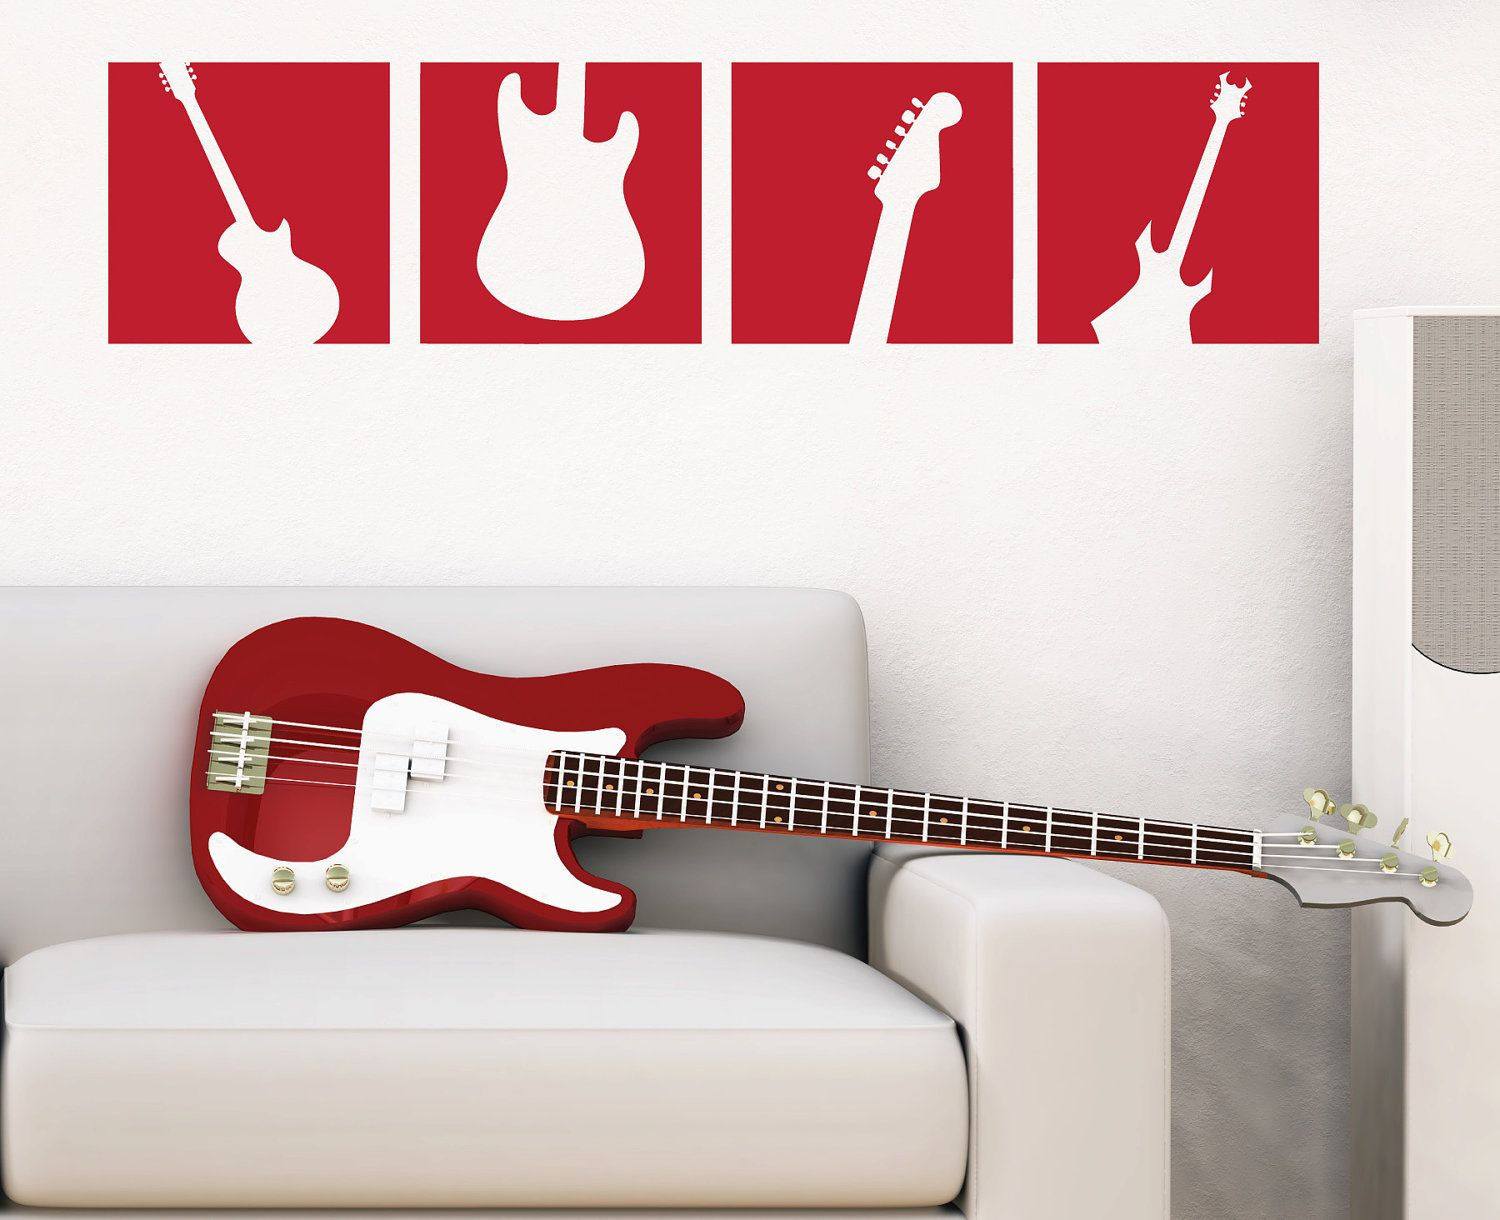 Vinyl Wall Decal Guitar Wall Decal Squares Vinyl Wall Art Sticker Boy